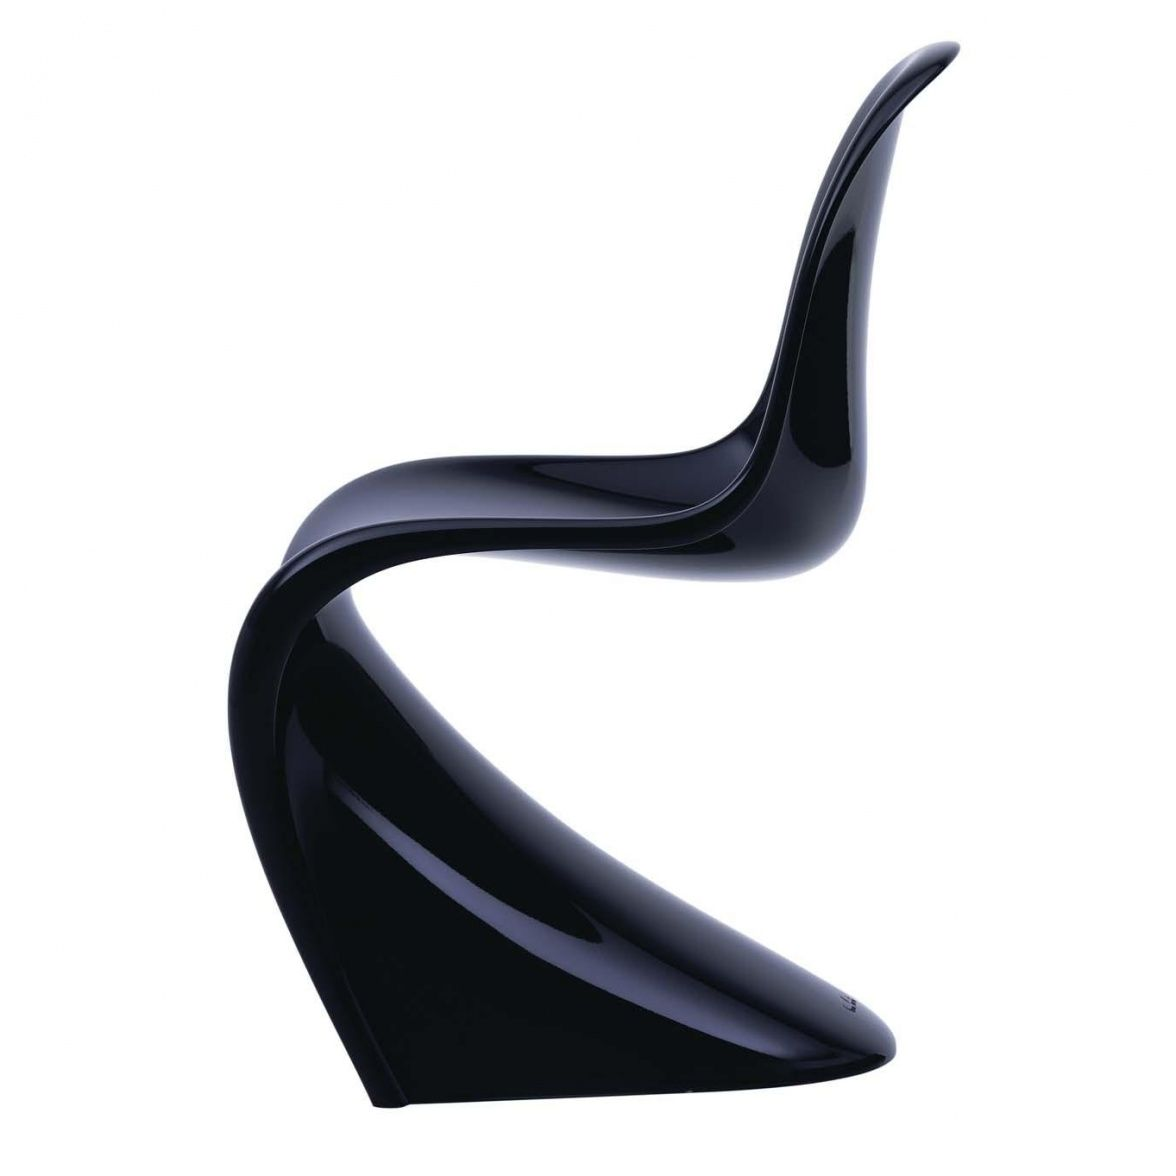 panton chair classic stuhl vitra verner panton. Black Bedroom Furniture Sets. Home Design Ideas